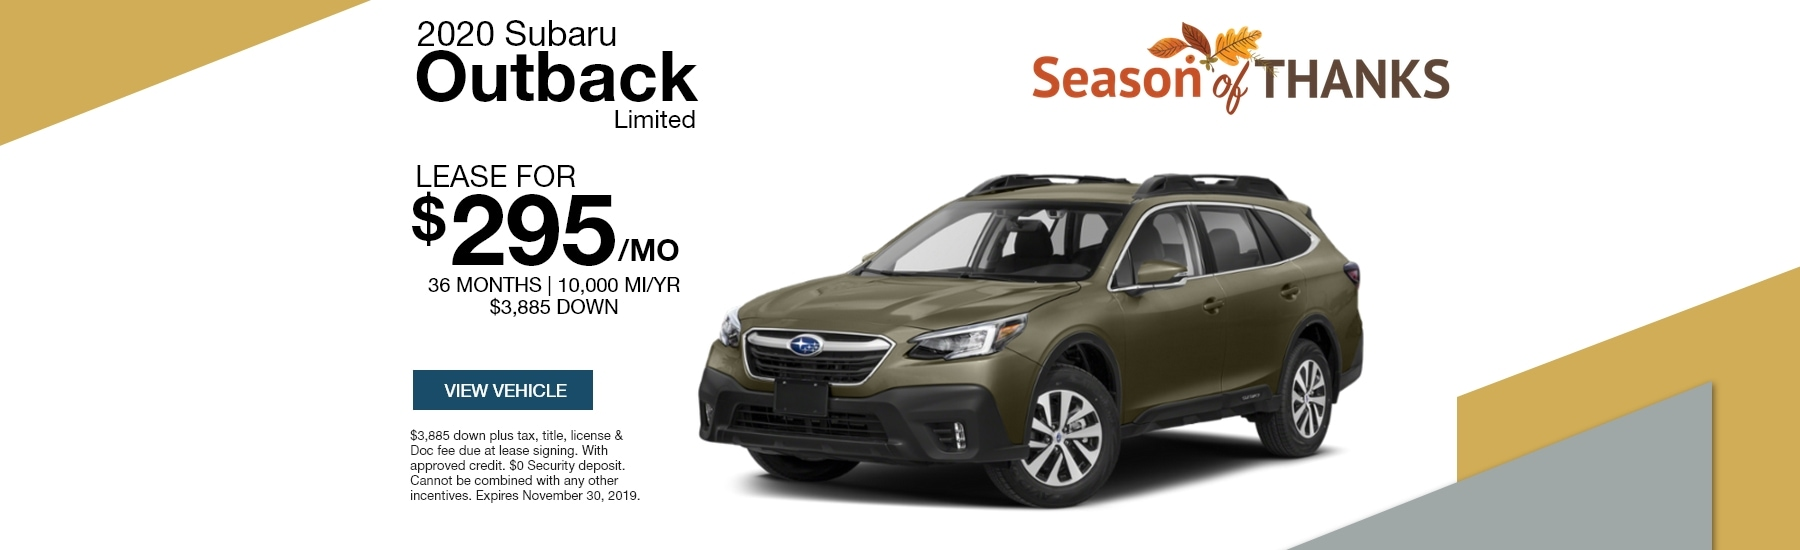 2020 Subaru Outback LTD